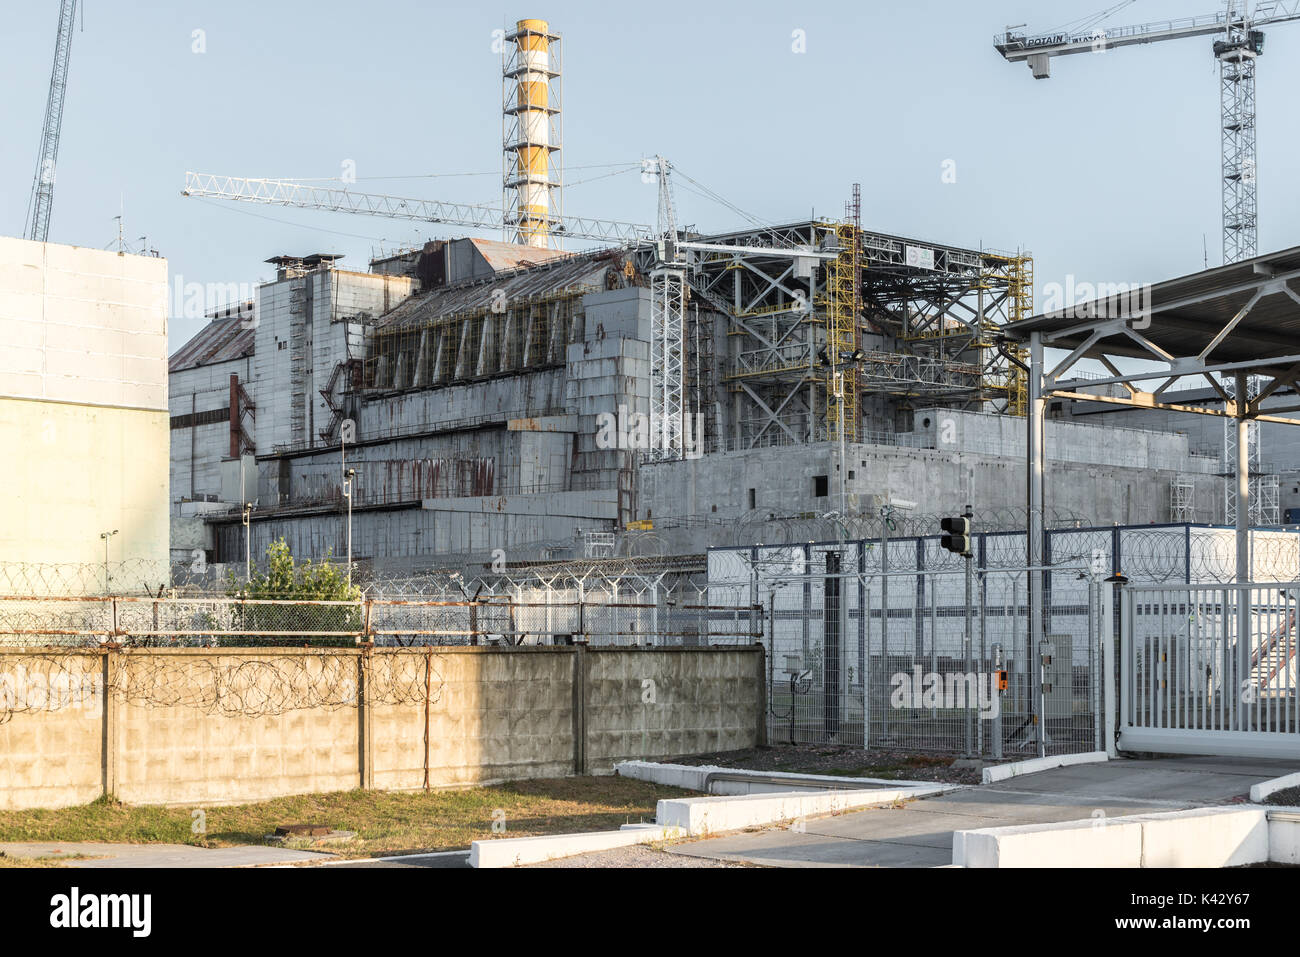 The old sarcophagus over reactor 4 of the Chernobyl Nuclear Power Plant - Stock Image